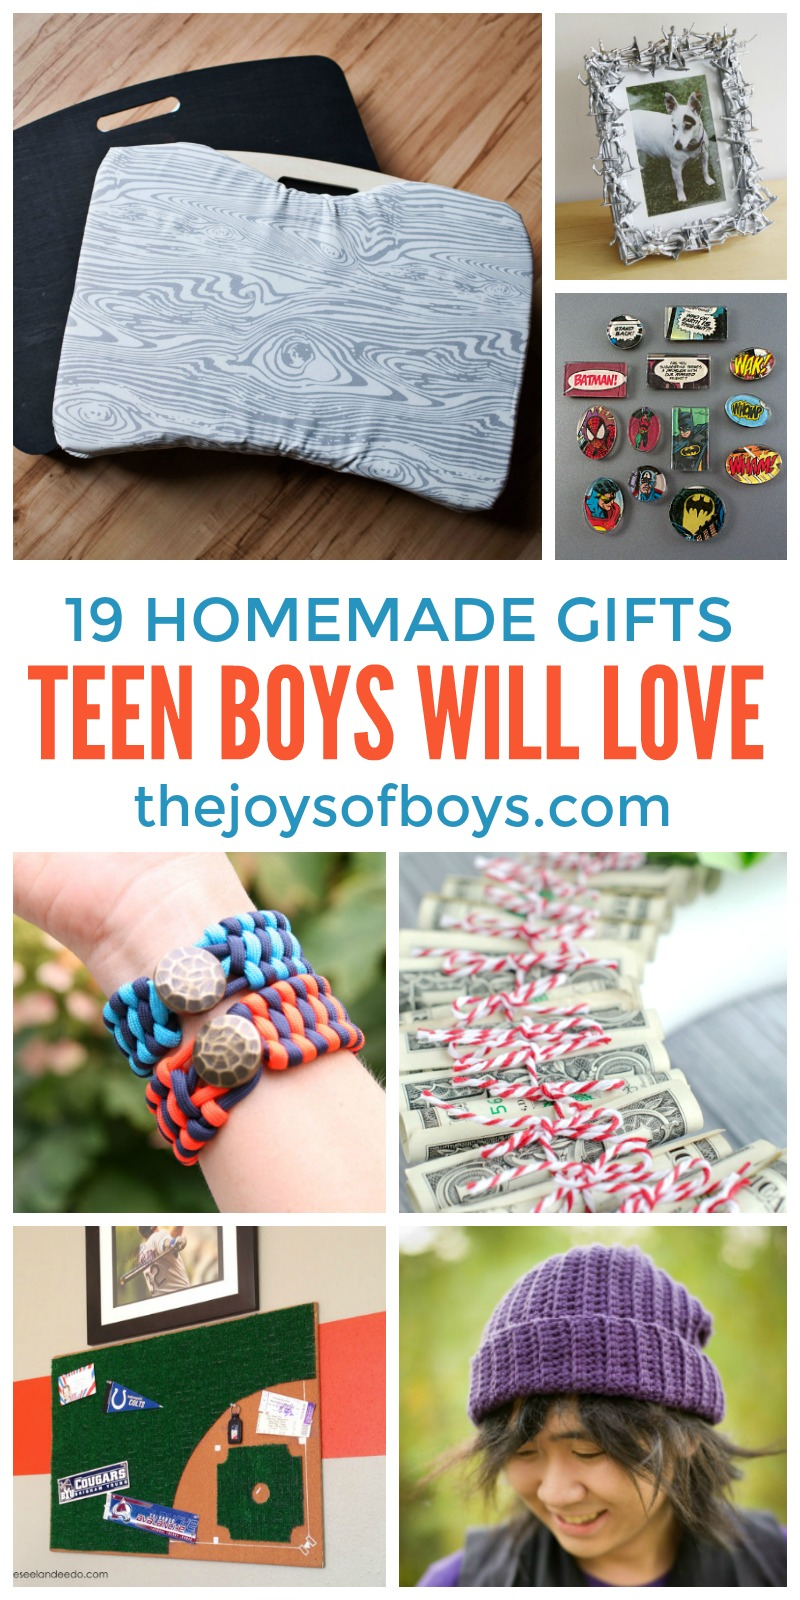 Diy gifts teen boys will love homemade gifts for teen boys for Easy diy gifts for boys